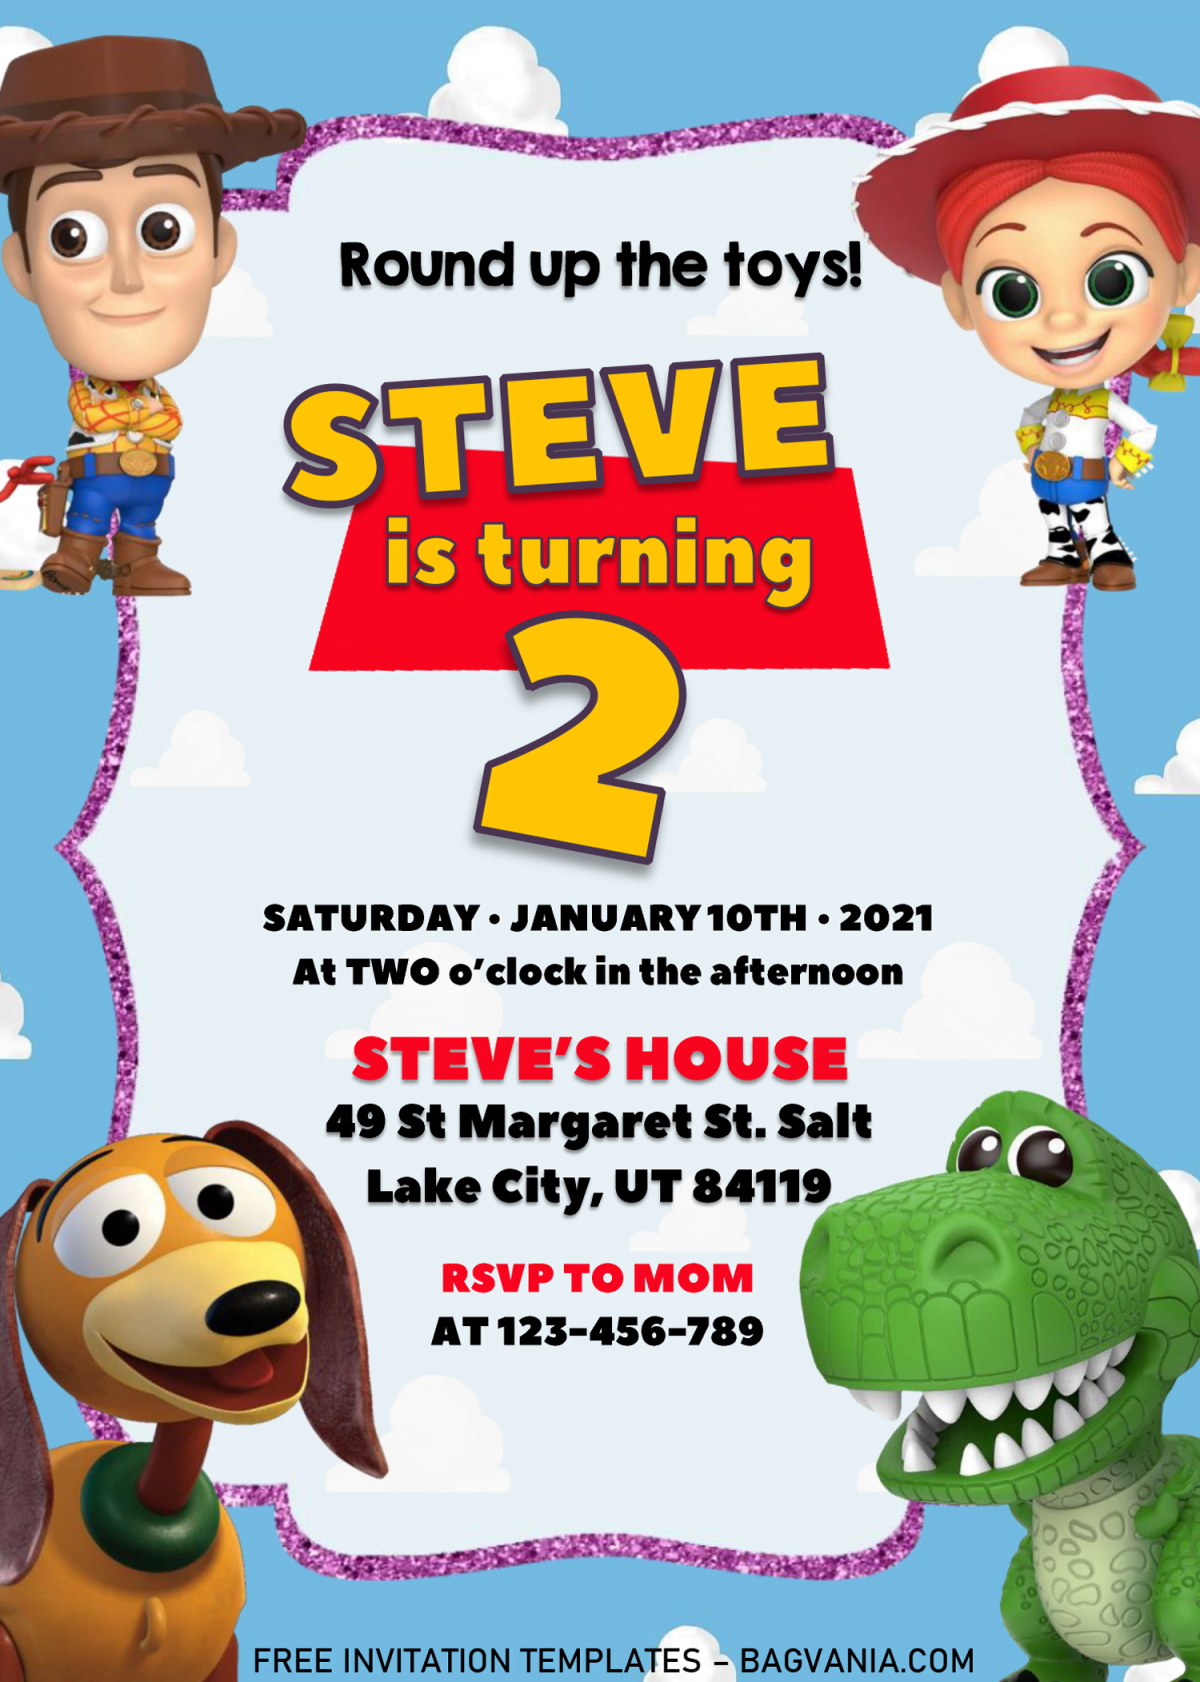 Toy Story Invitation Templates - Editable With MS Word and has blue background